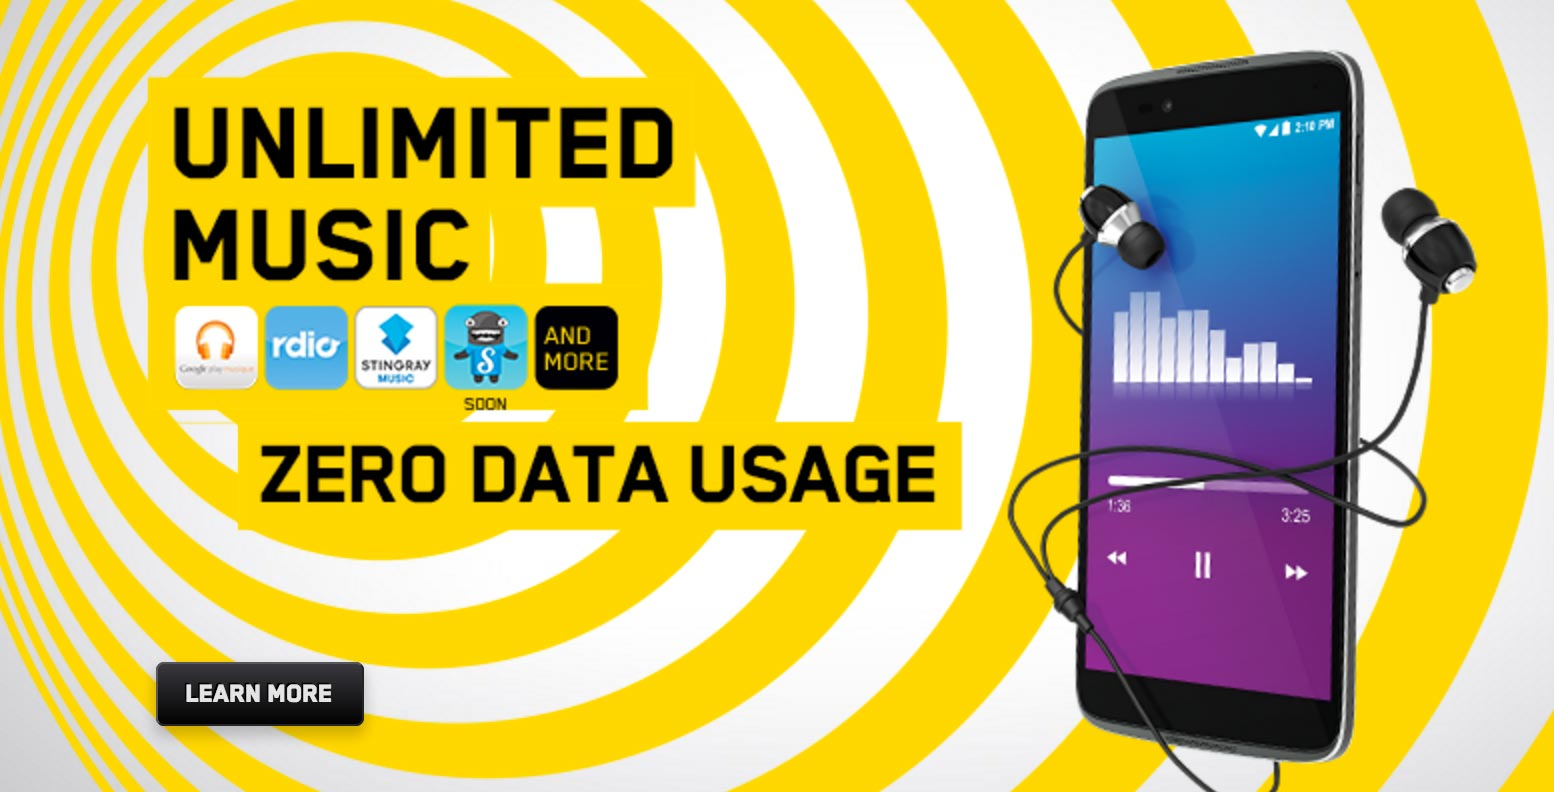 videotron unlimited music